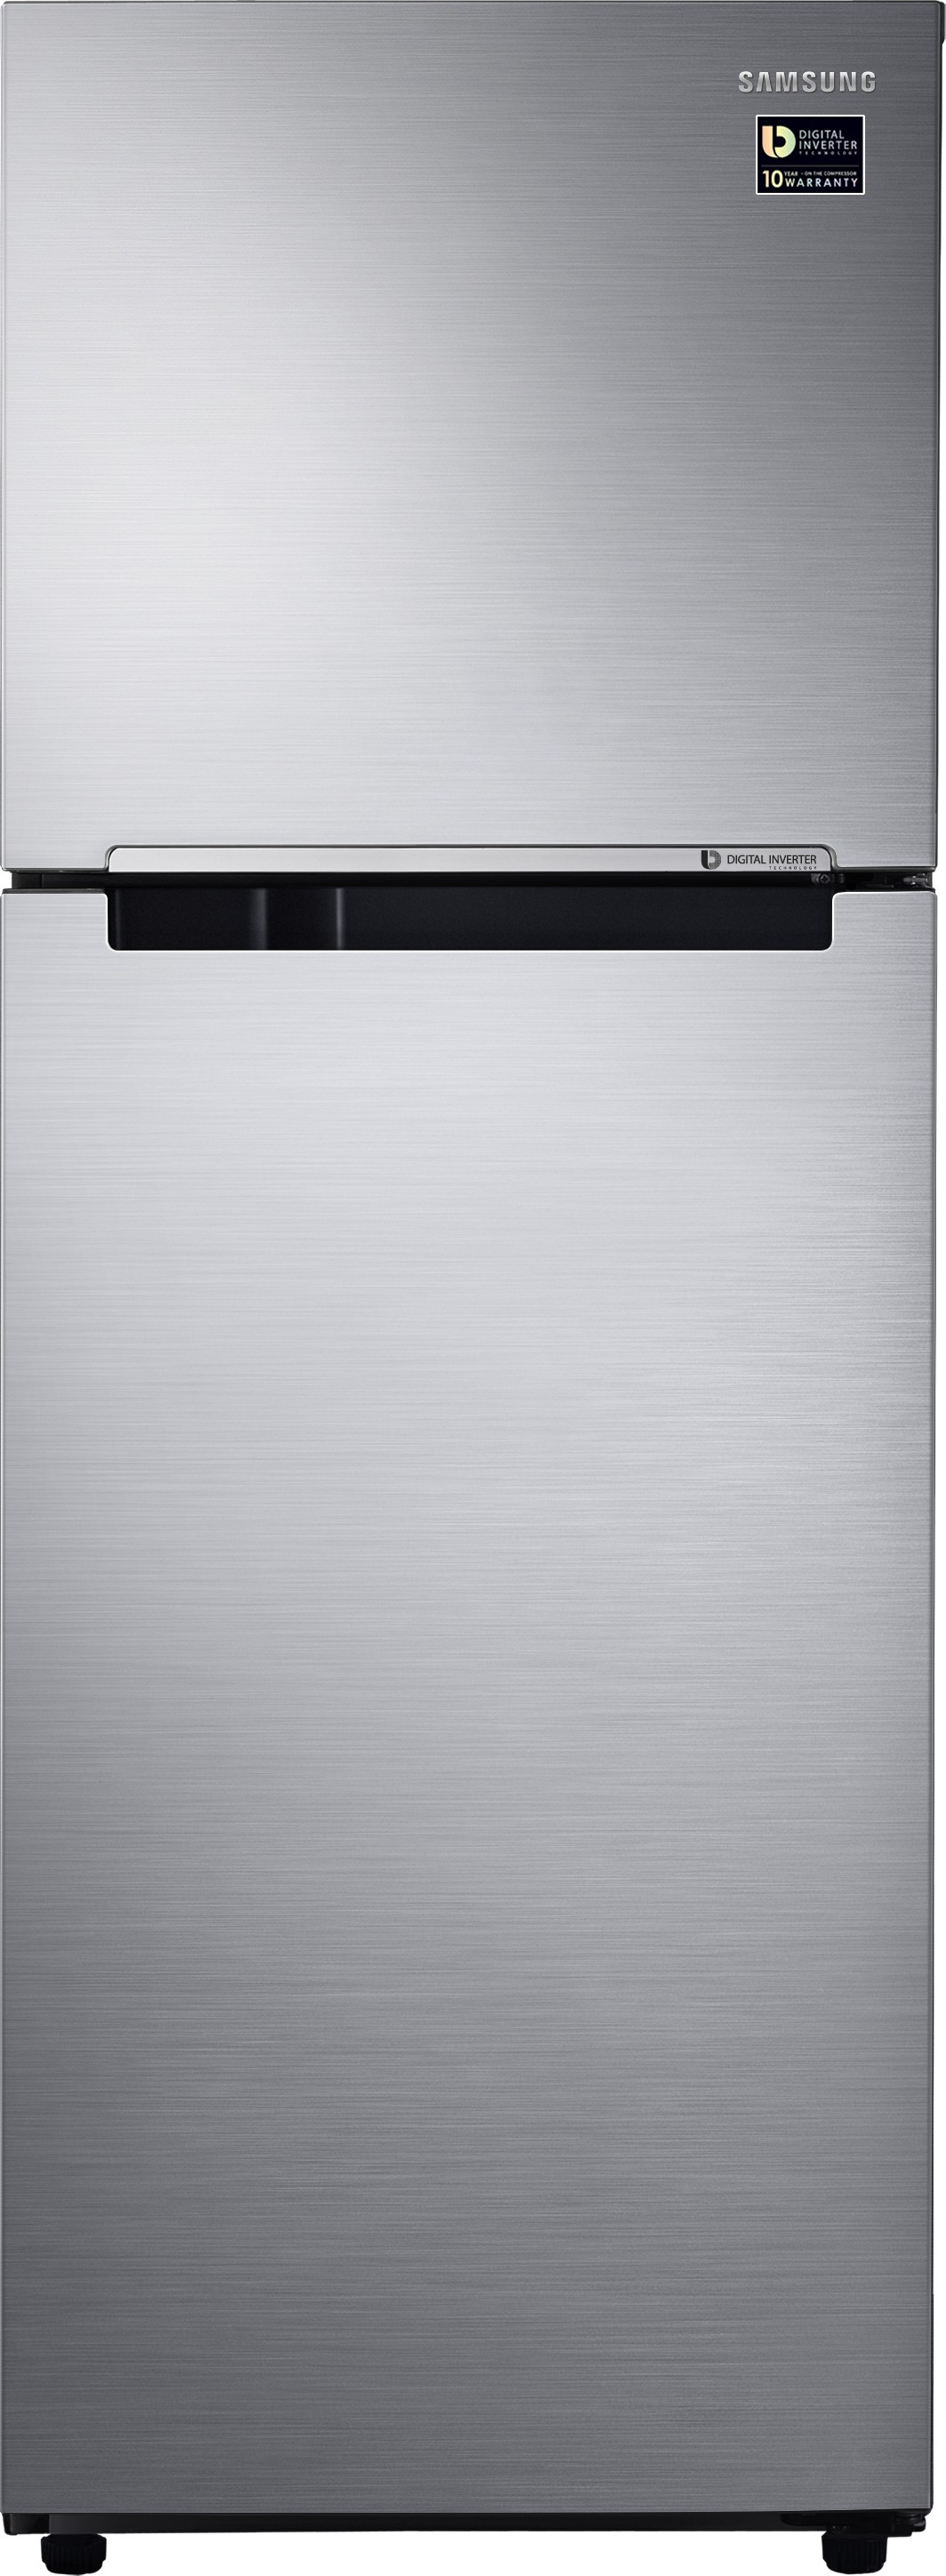 Deals - Noida - From ₹11,299 <br> Samsung Refrigerators<br> Category - home_kitchen<br> Business - Flipkart.com